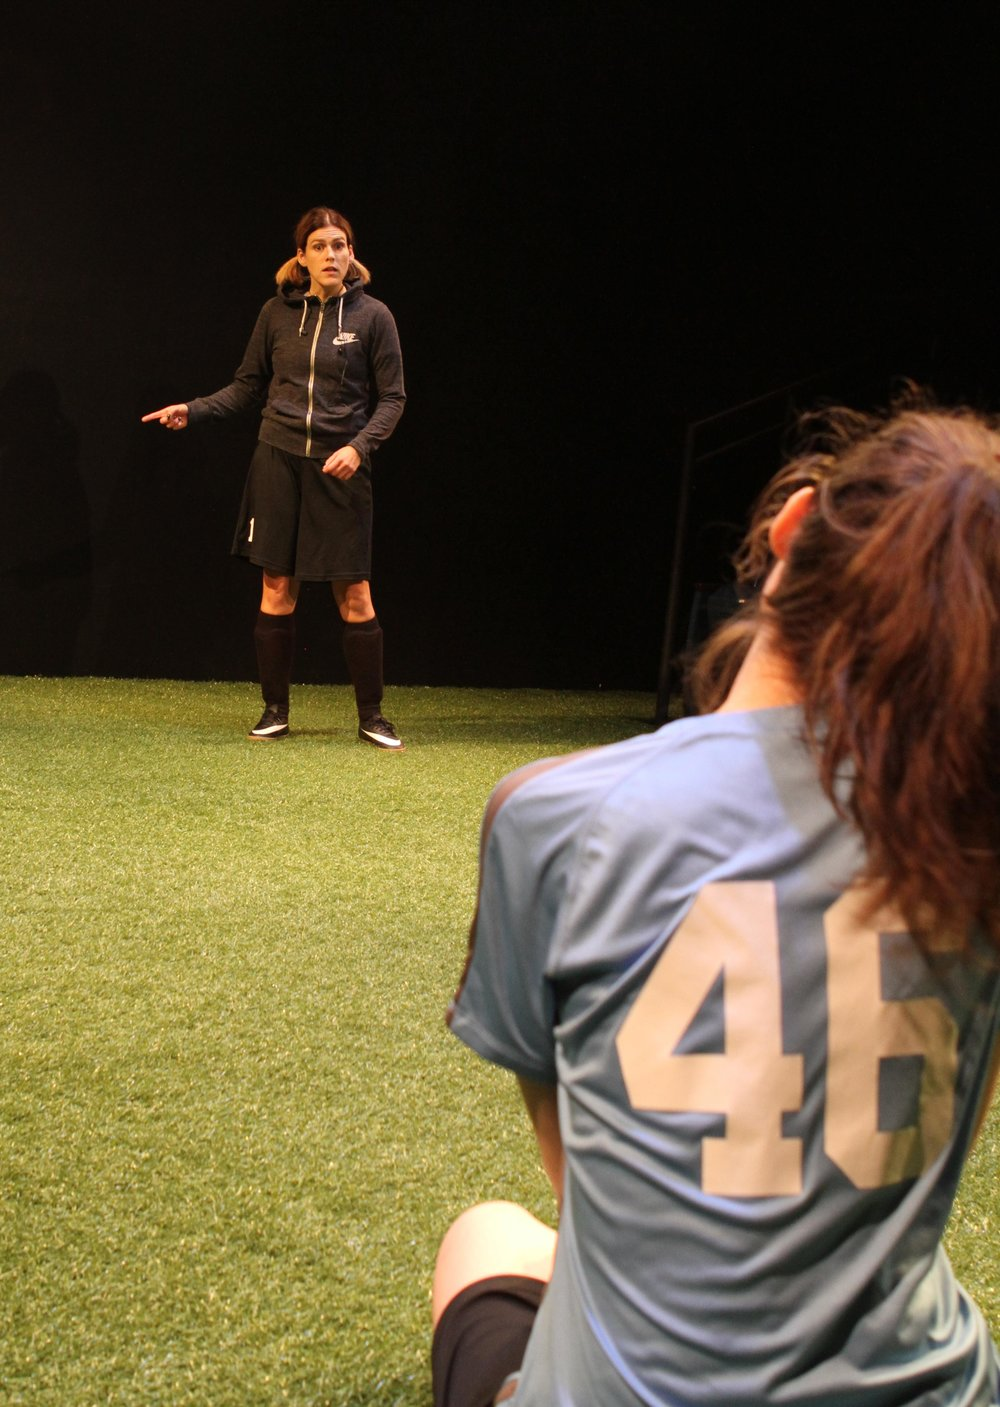 Production photos by: Ron Reed  Featuring: Jalen Saip and Paige Louter